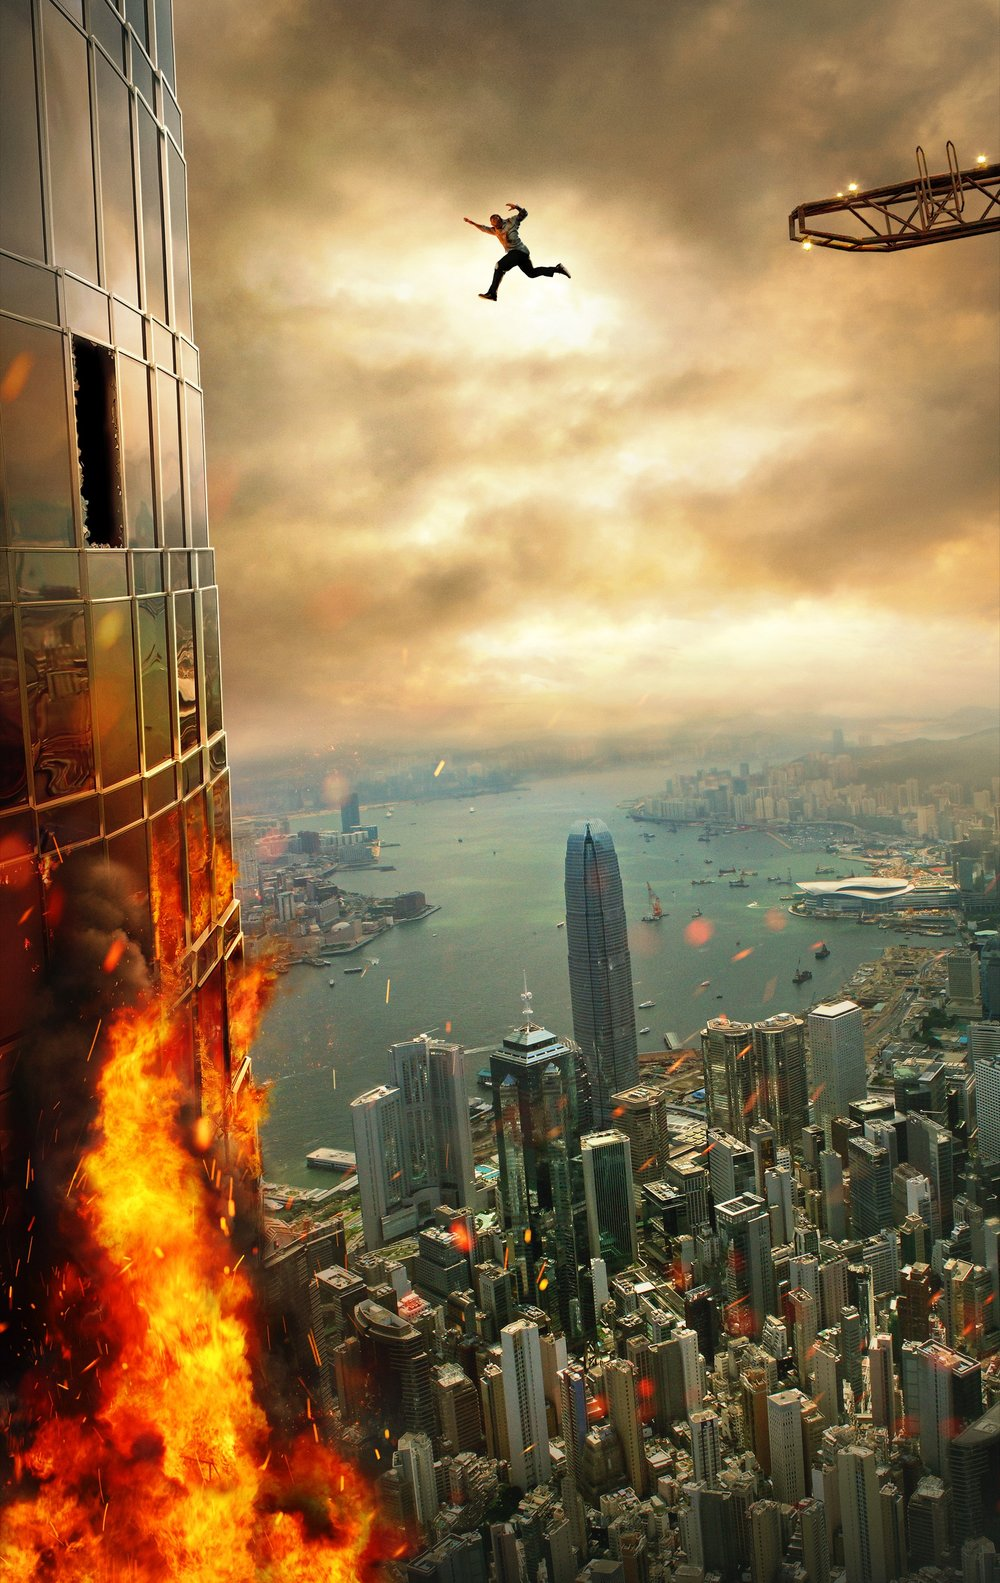 """Global icon DWAYNE JOHNSON leads the cast of Legendary's """"Skyscraper"""" as former FBI Hostage Rescue Team leader and U.S. war veteran Will Sawyer, who now assesses security for skyscrapers.  On assignment in China he finds the tallest, safest building in the world suddenly ablaze, and he's been framed for it.  A wanted man on the run, Will must find those responsible, clear his name and somehow rescue his family who is trapped inside the building...above the fire line."""